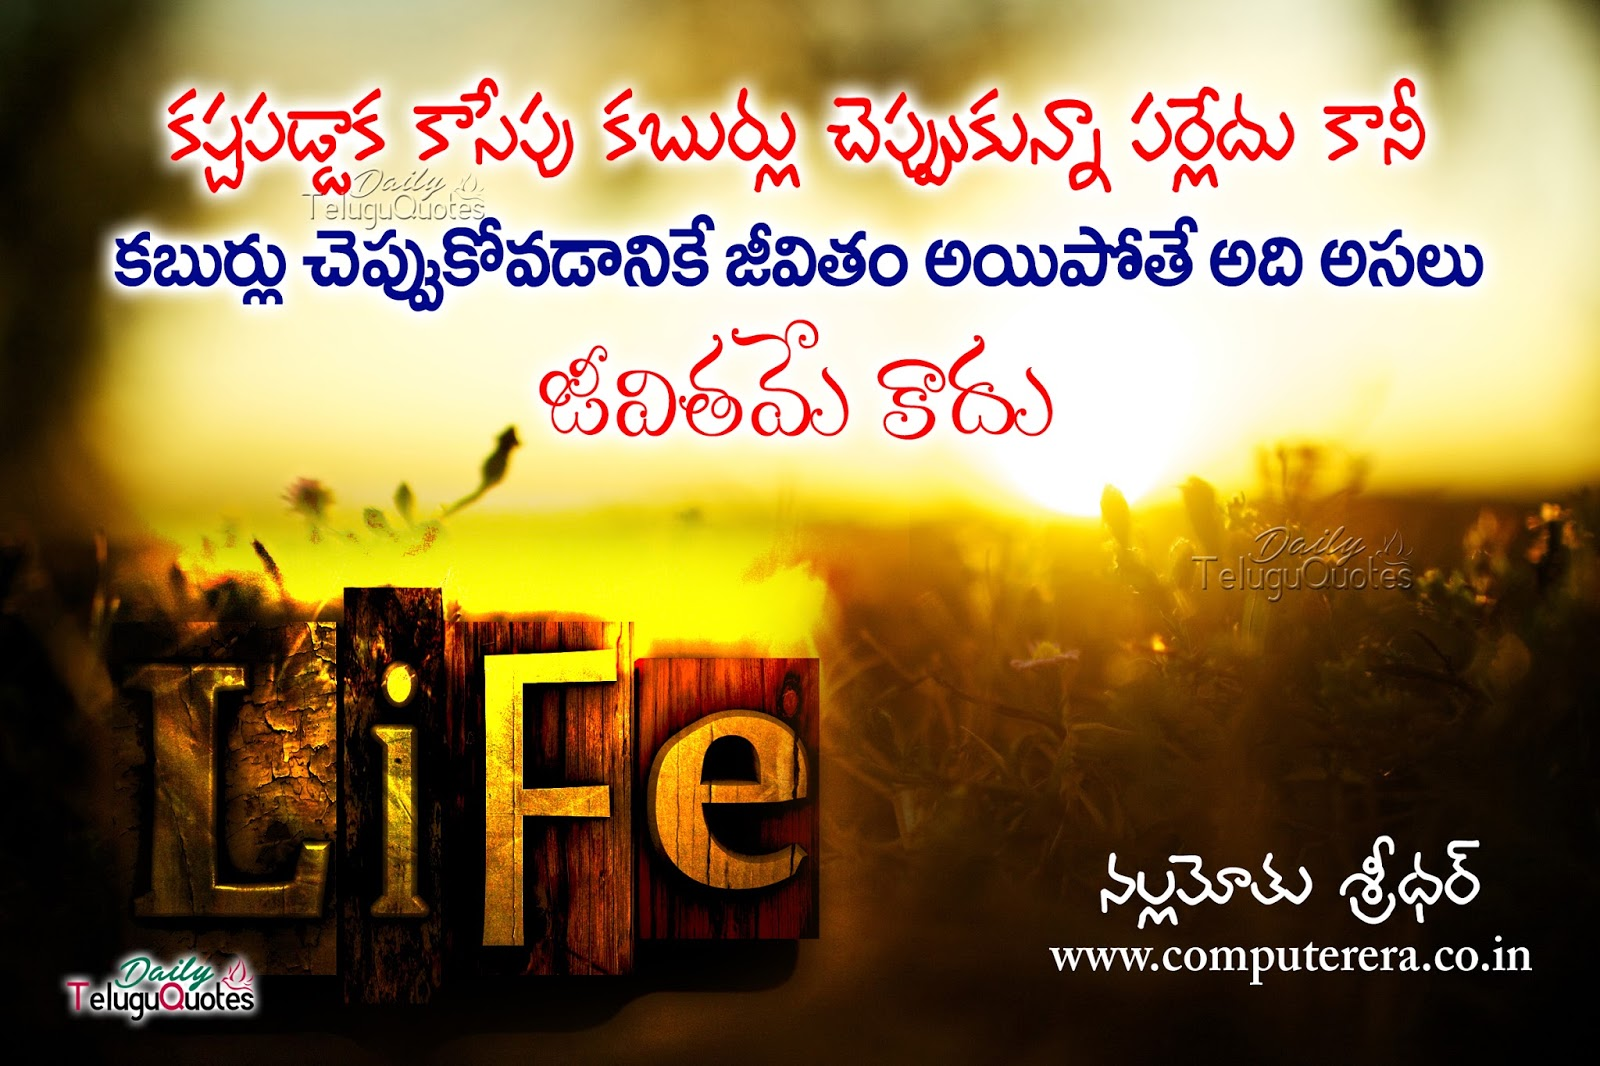 Motivational Life Quotes Of The Day Best Life And Motivational Quotes In Telugunallamothu Sridhar